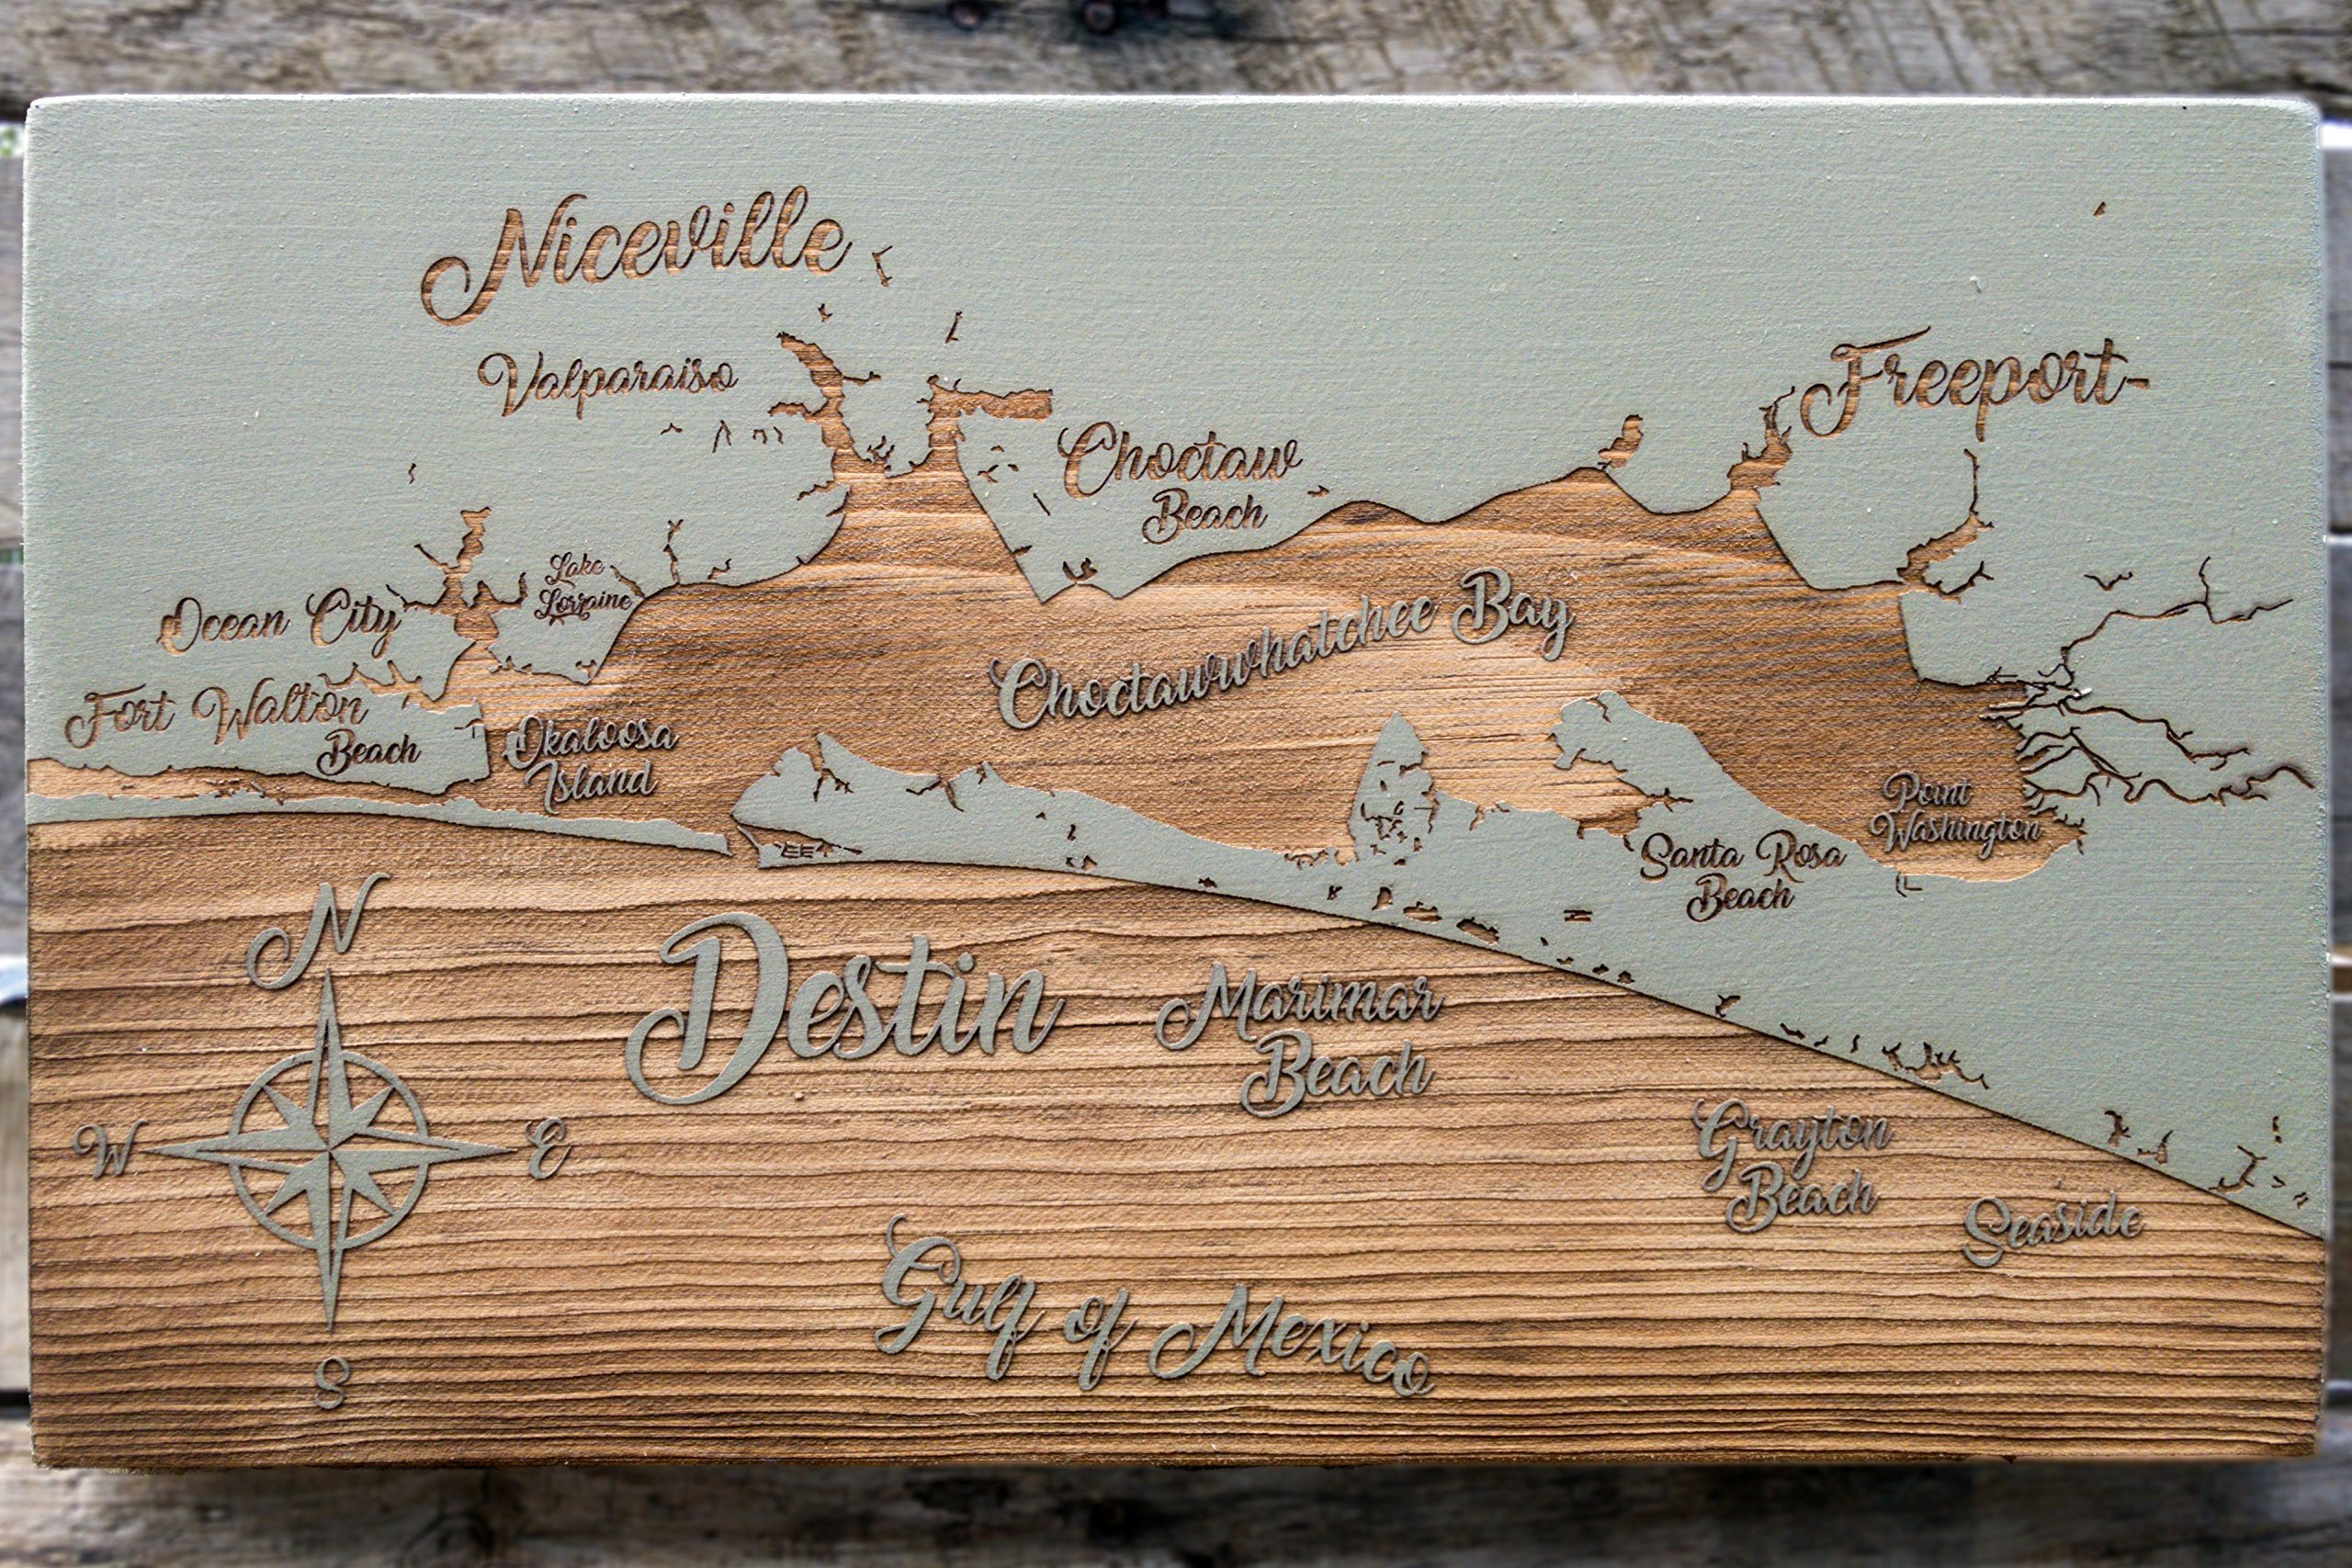 Destin, Florida Whimsical wood engraved map